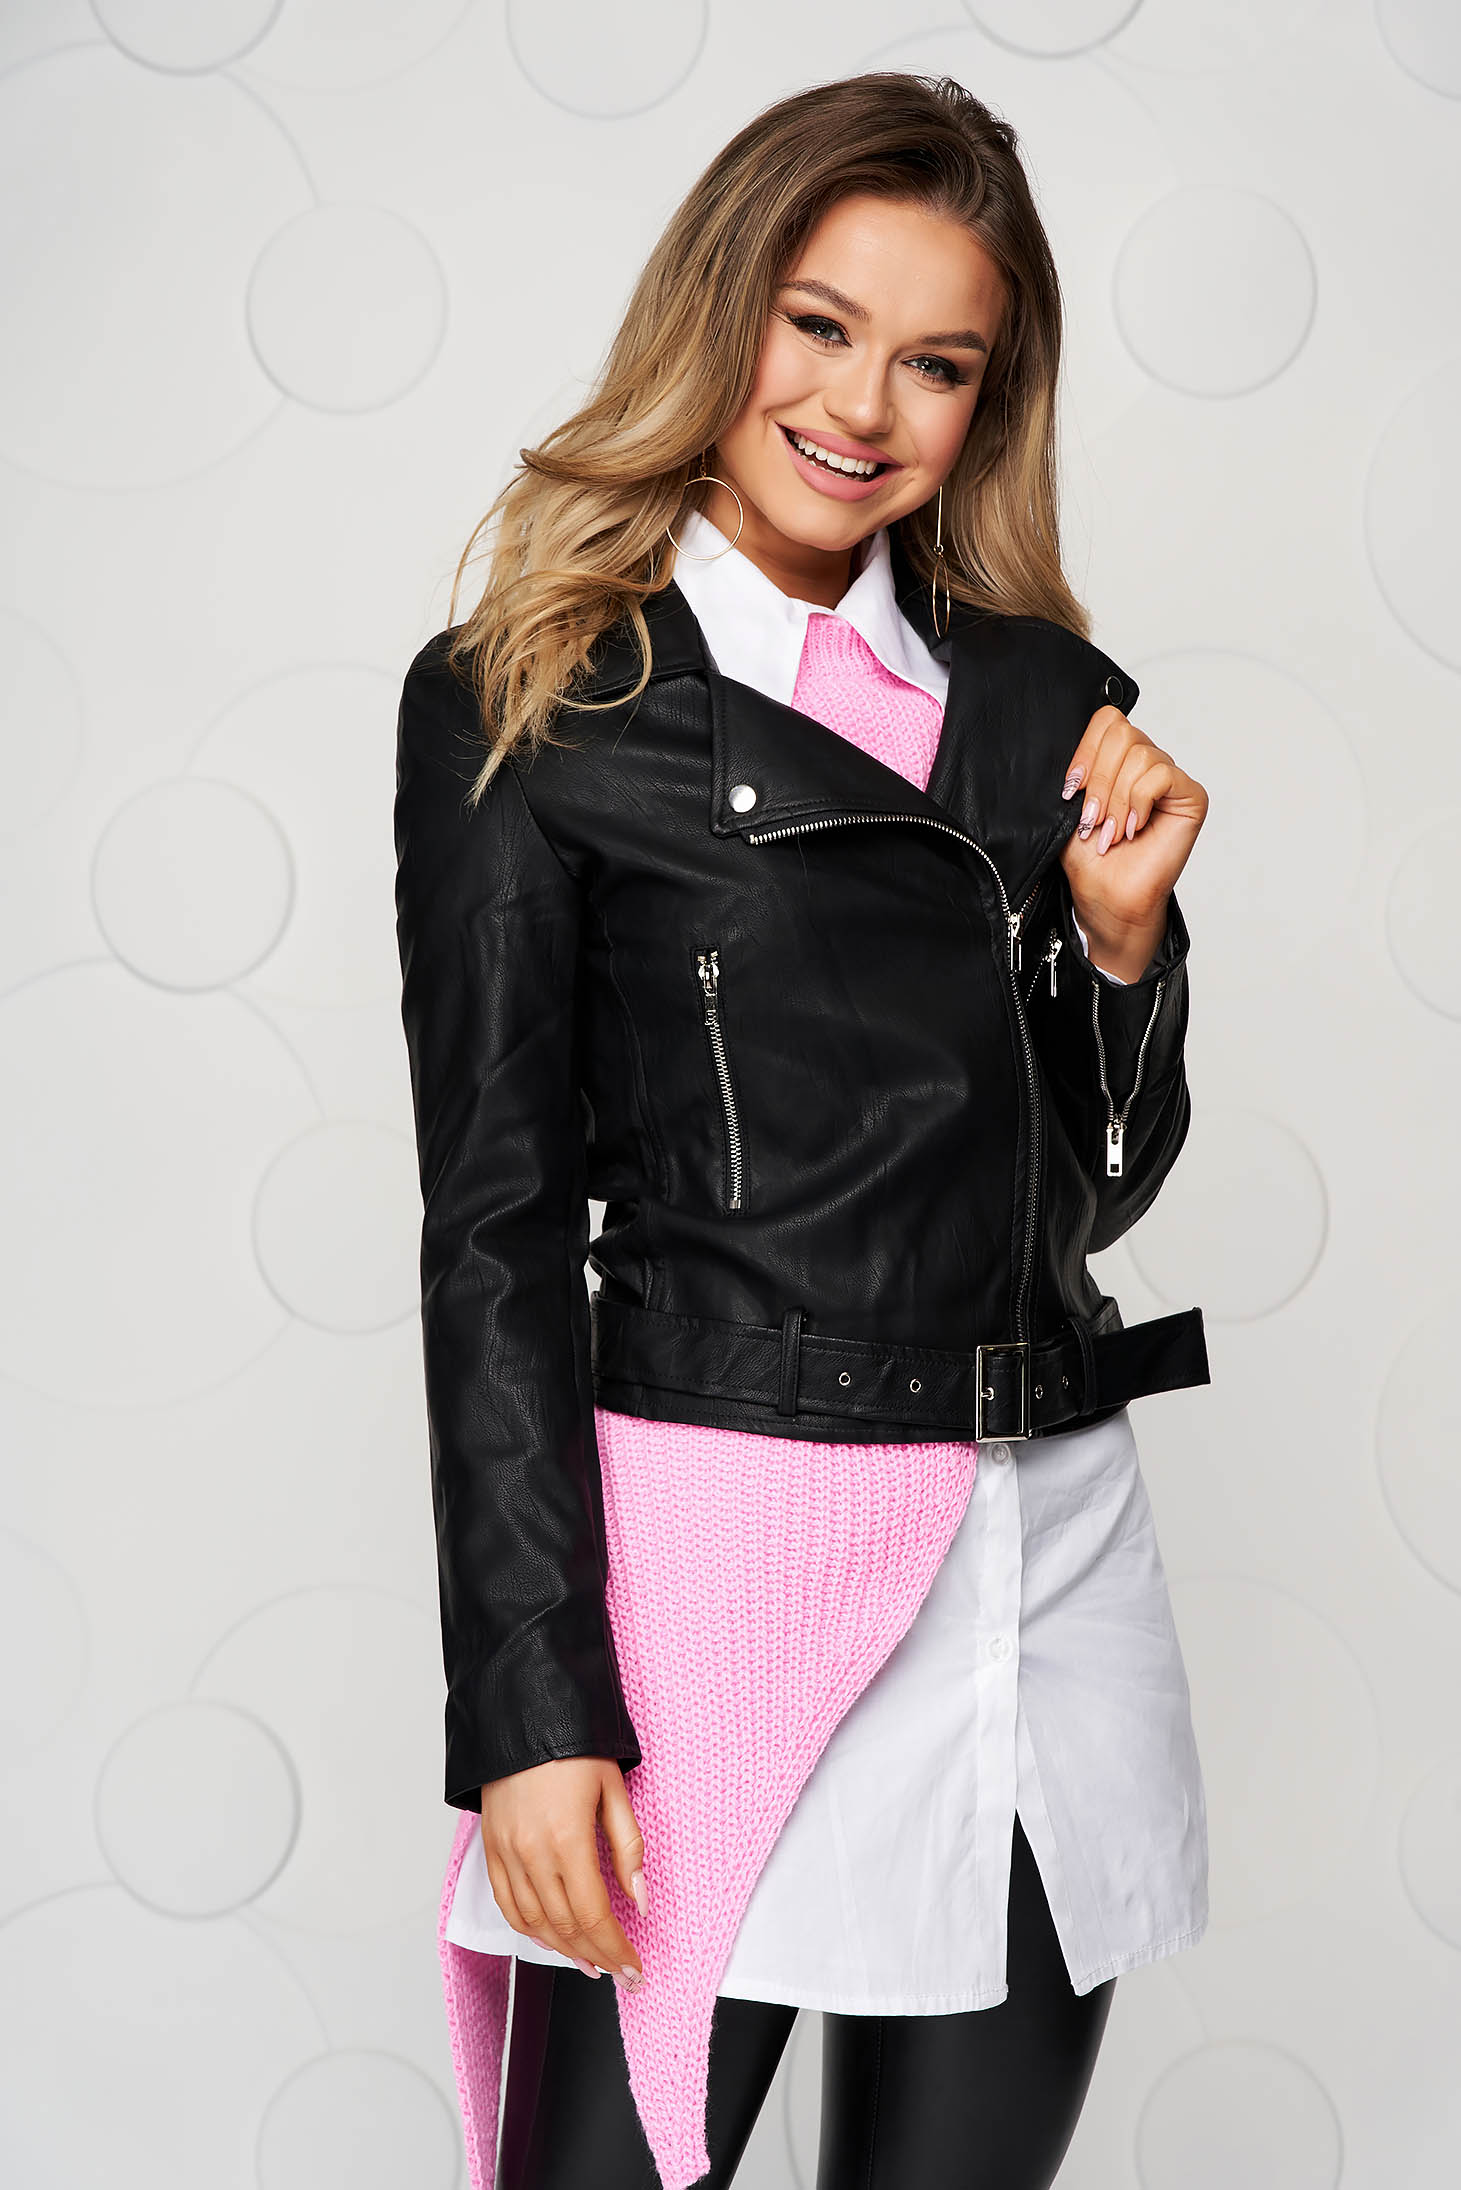 Black from ecological leather casual tented jacket accessorized with belt